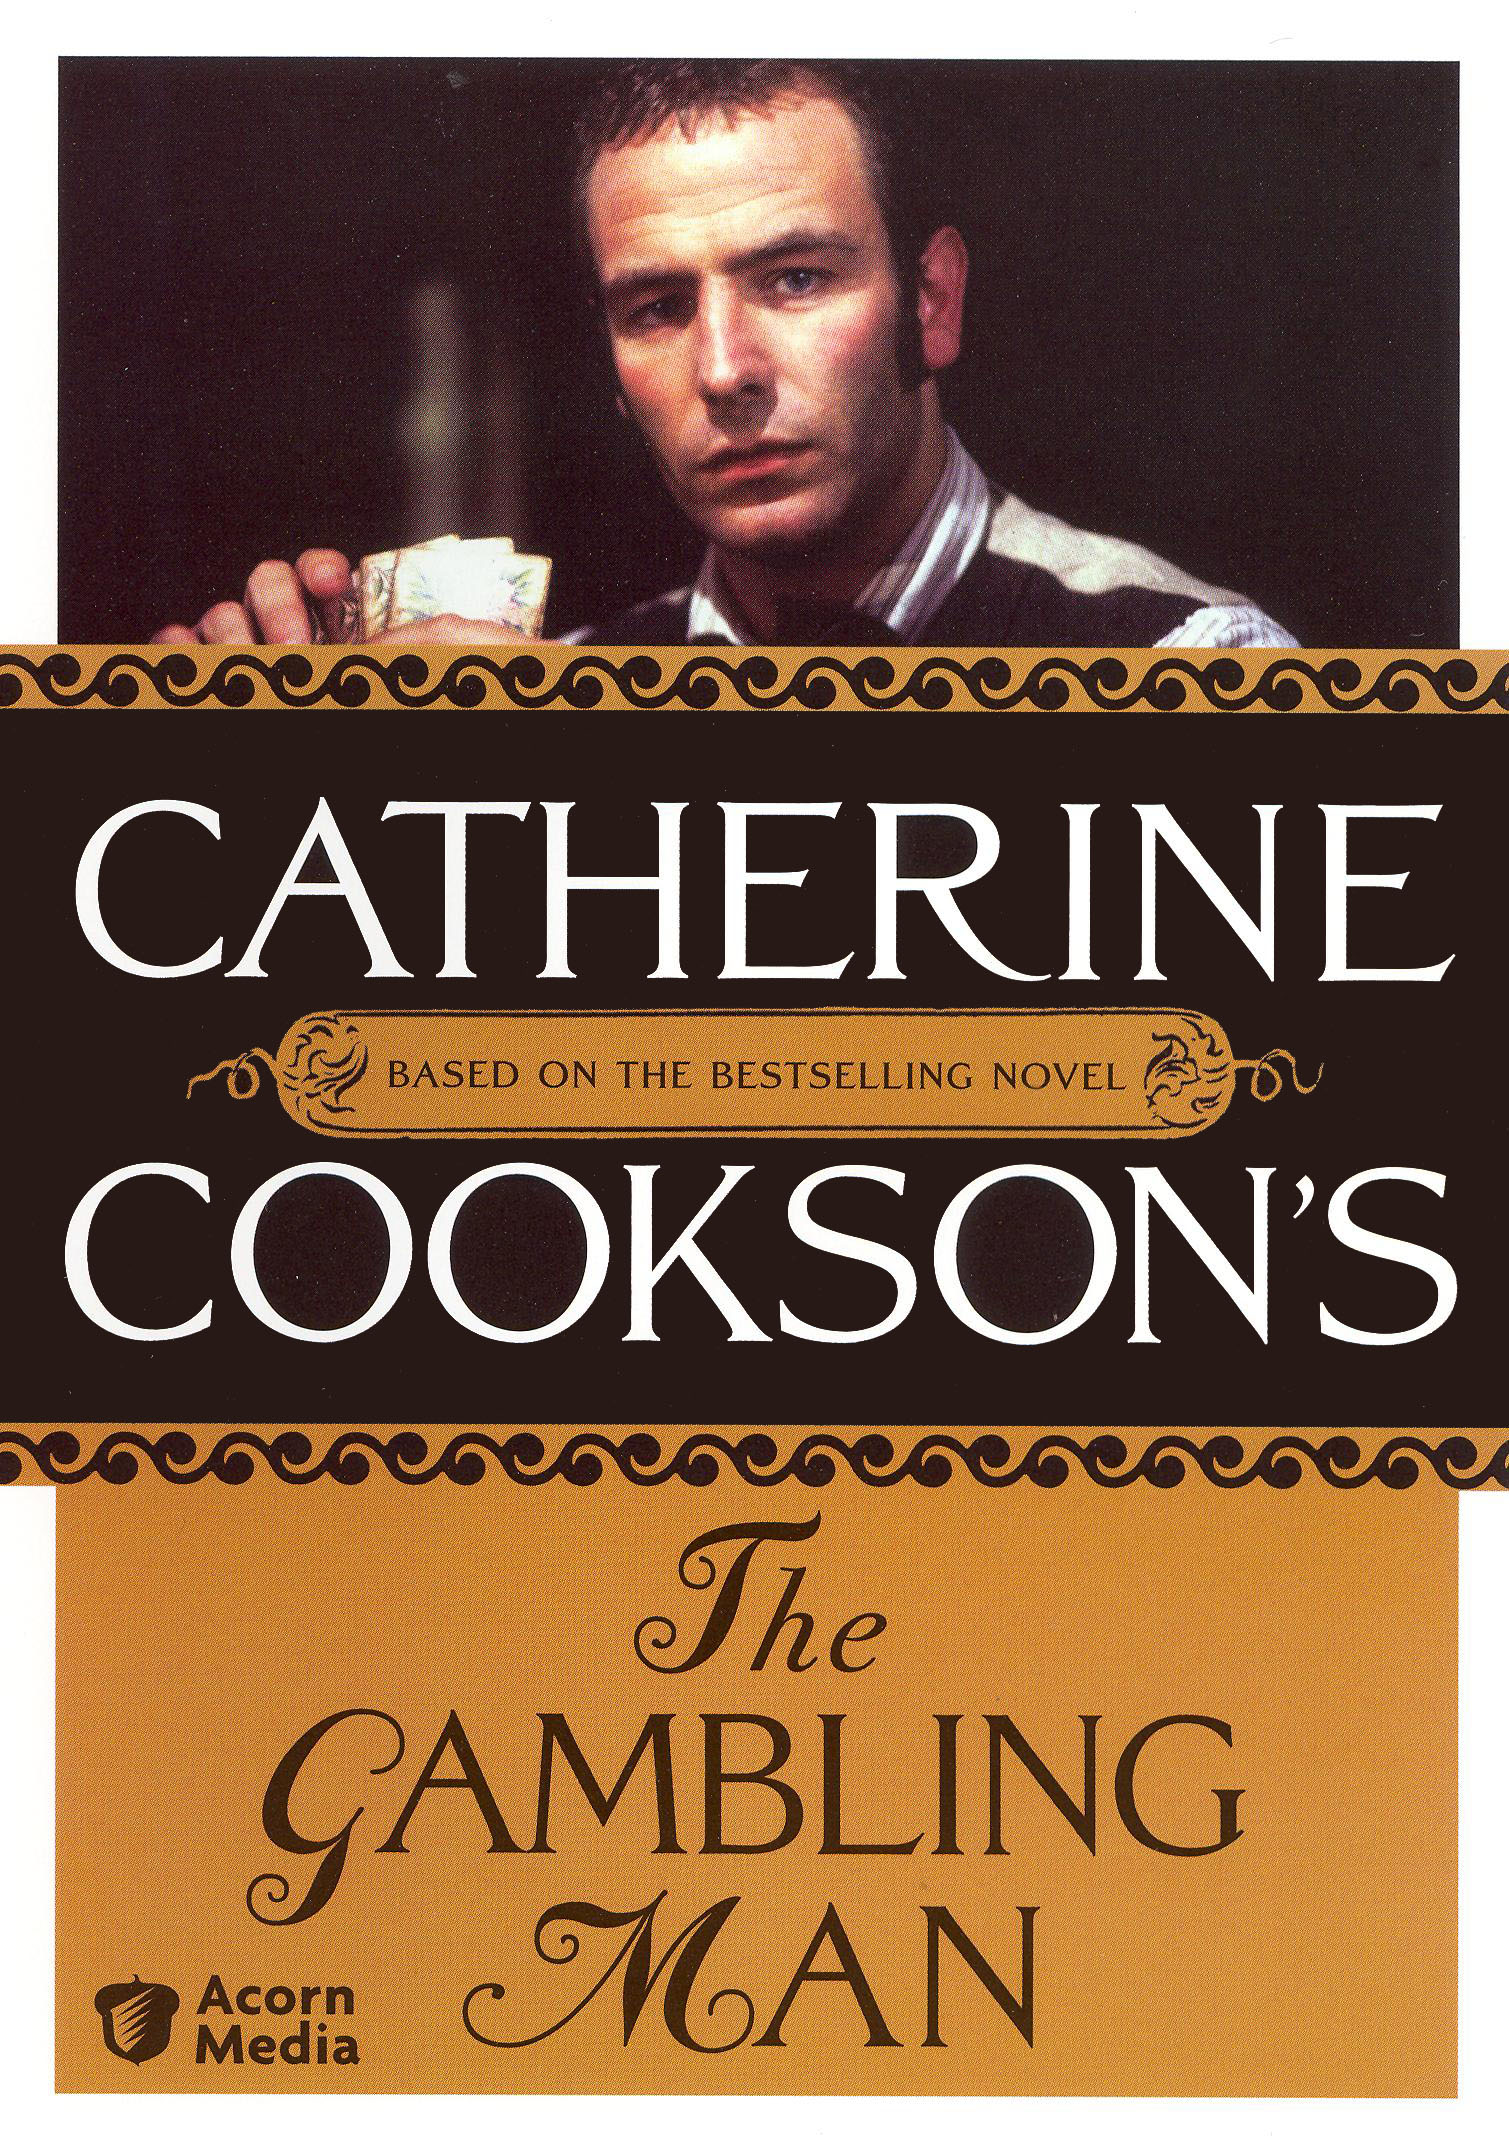 The gambling man catherine cookson cast dragon spin free slots